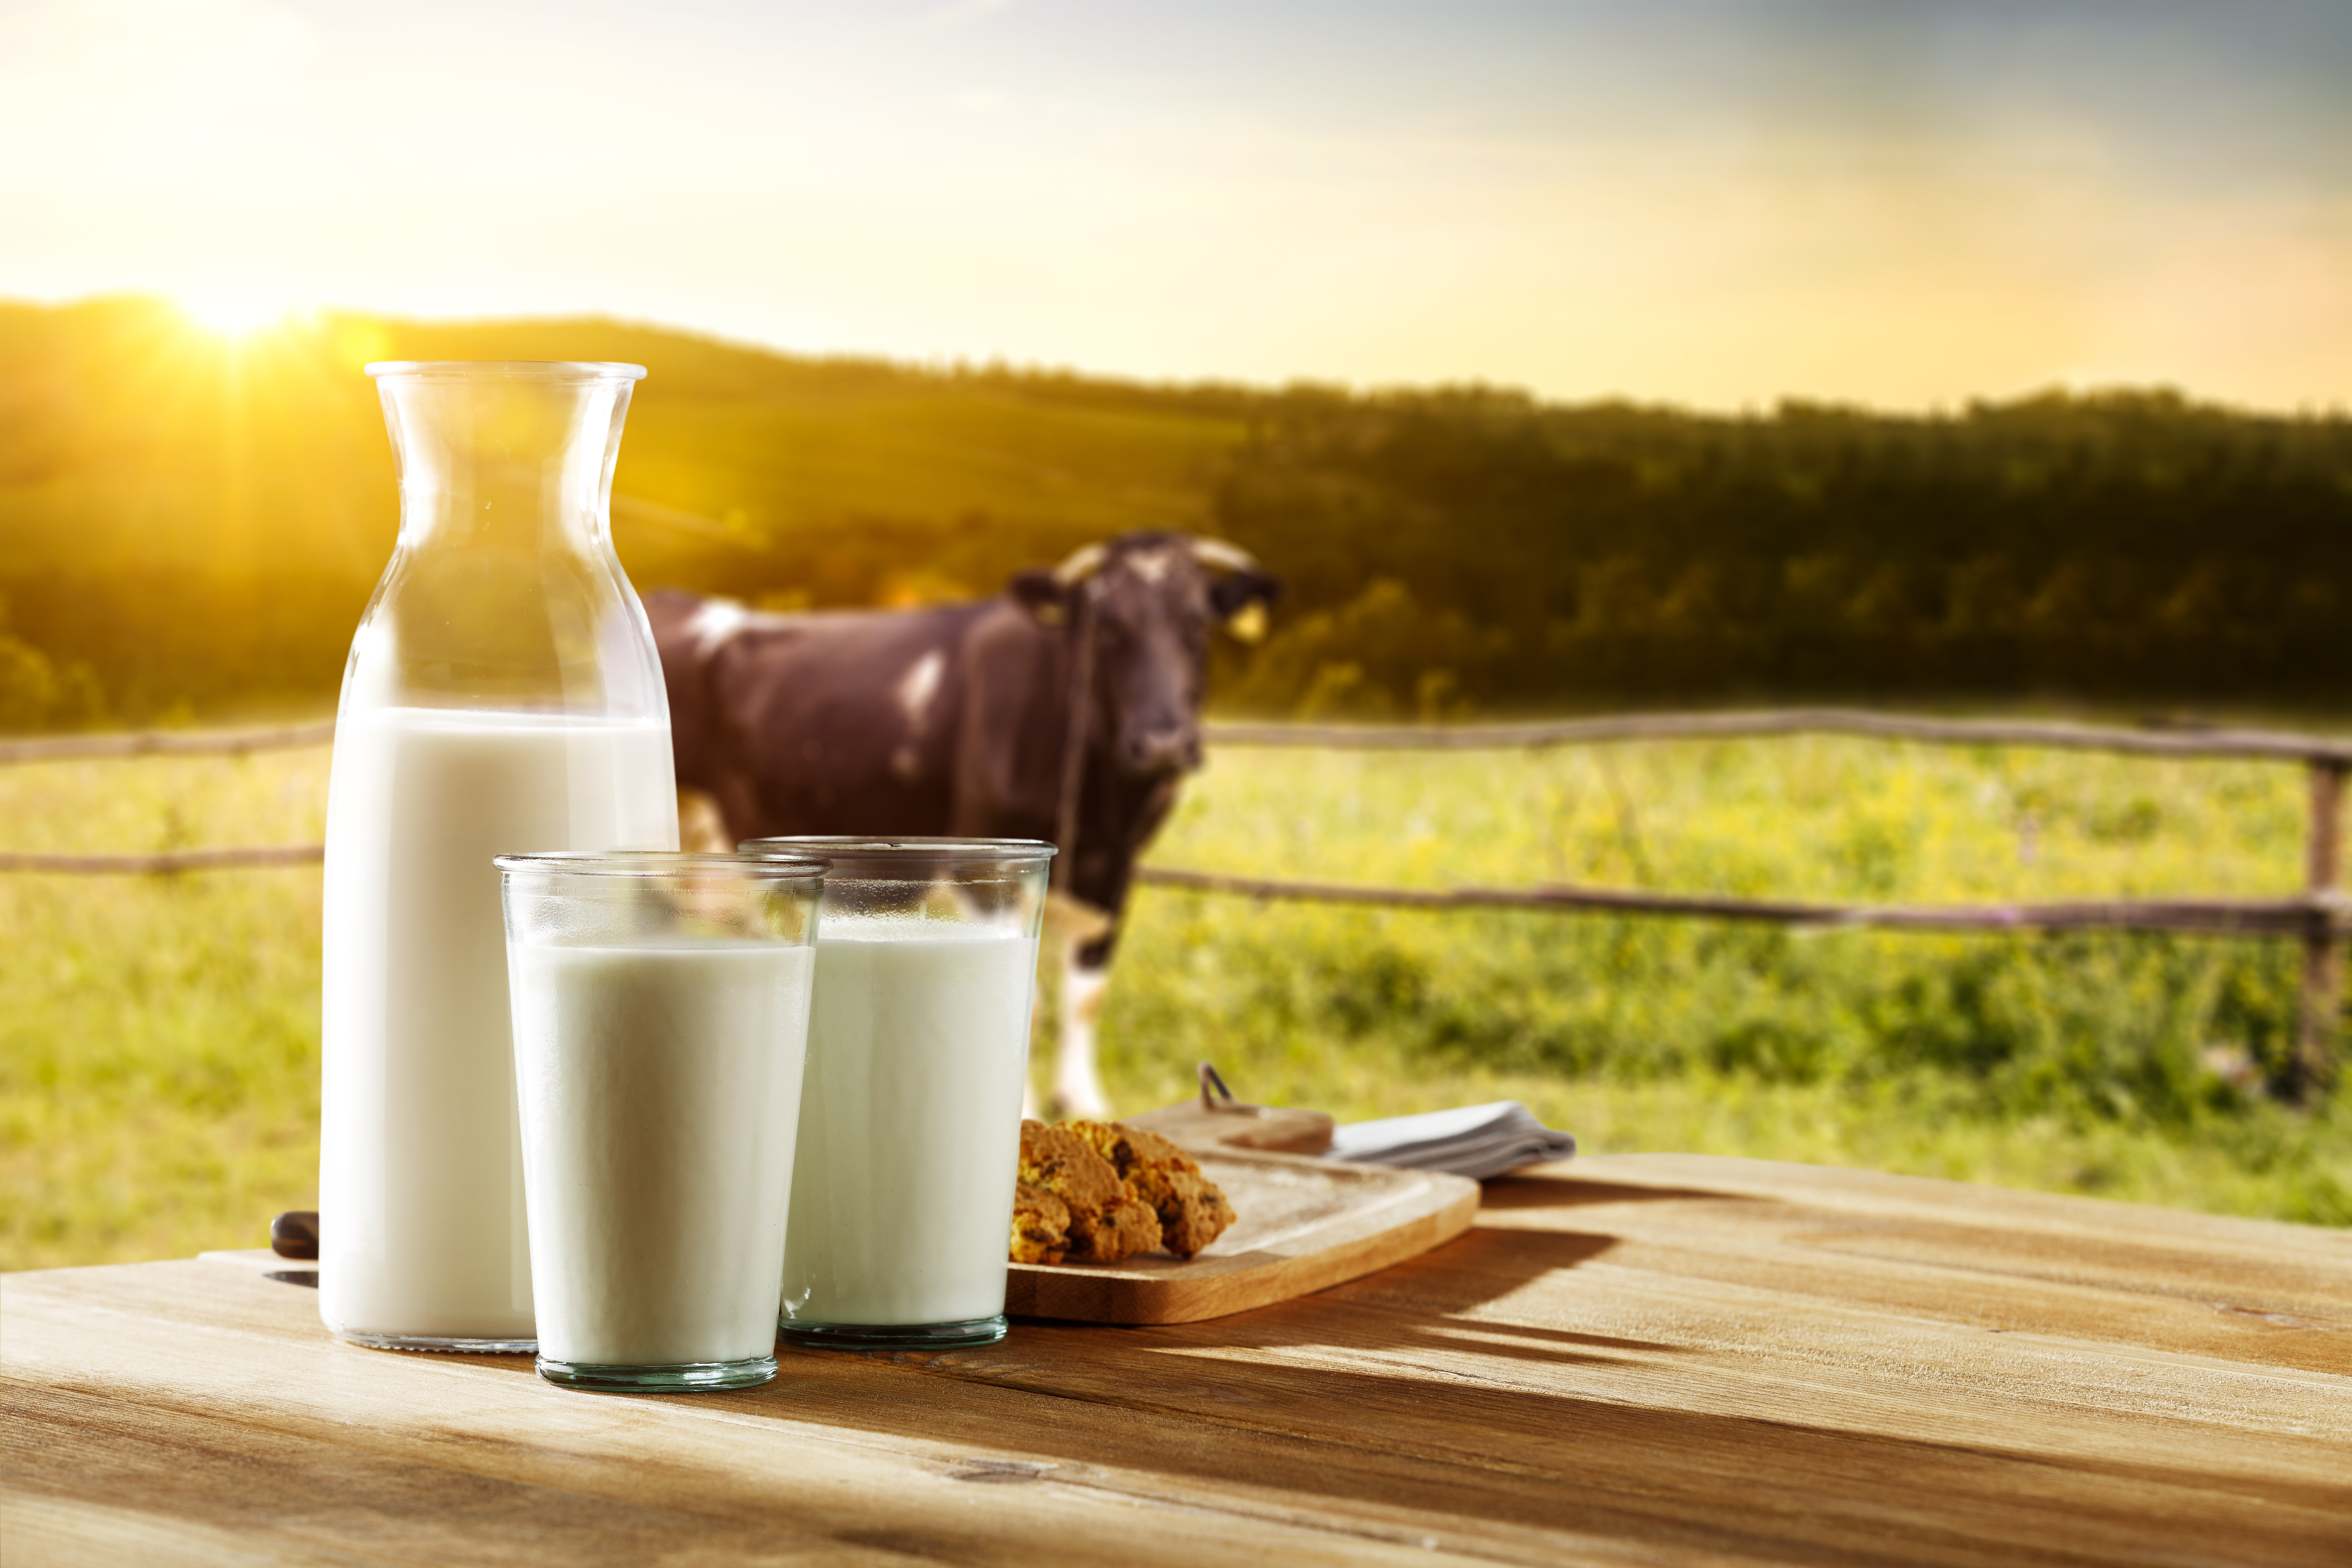 Three glasses of milk sitting on table in front of pasture with cow